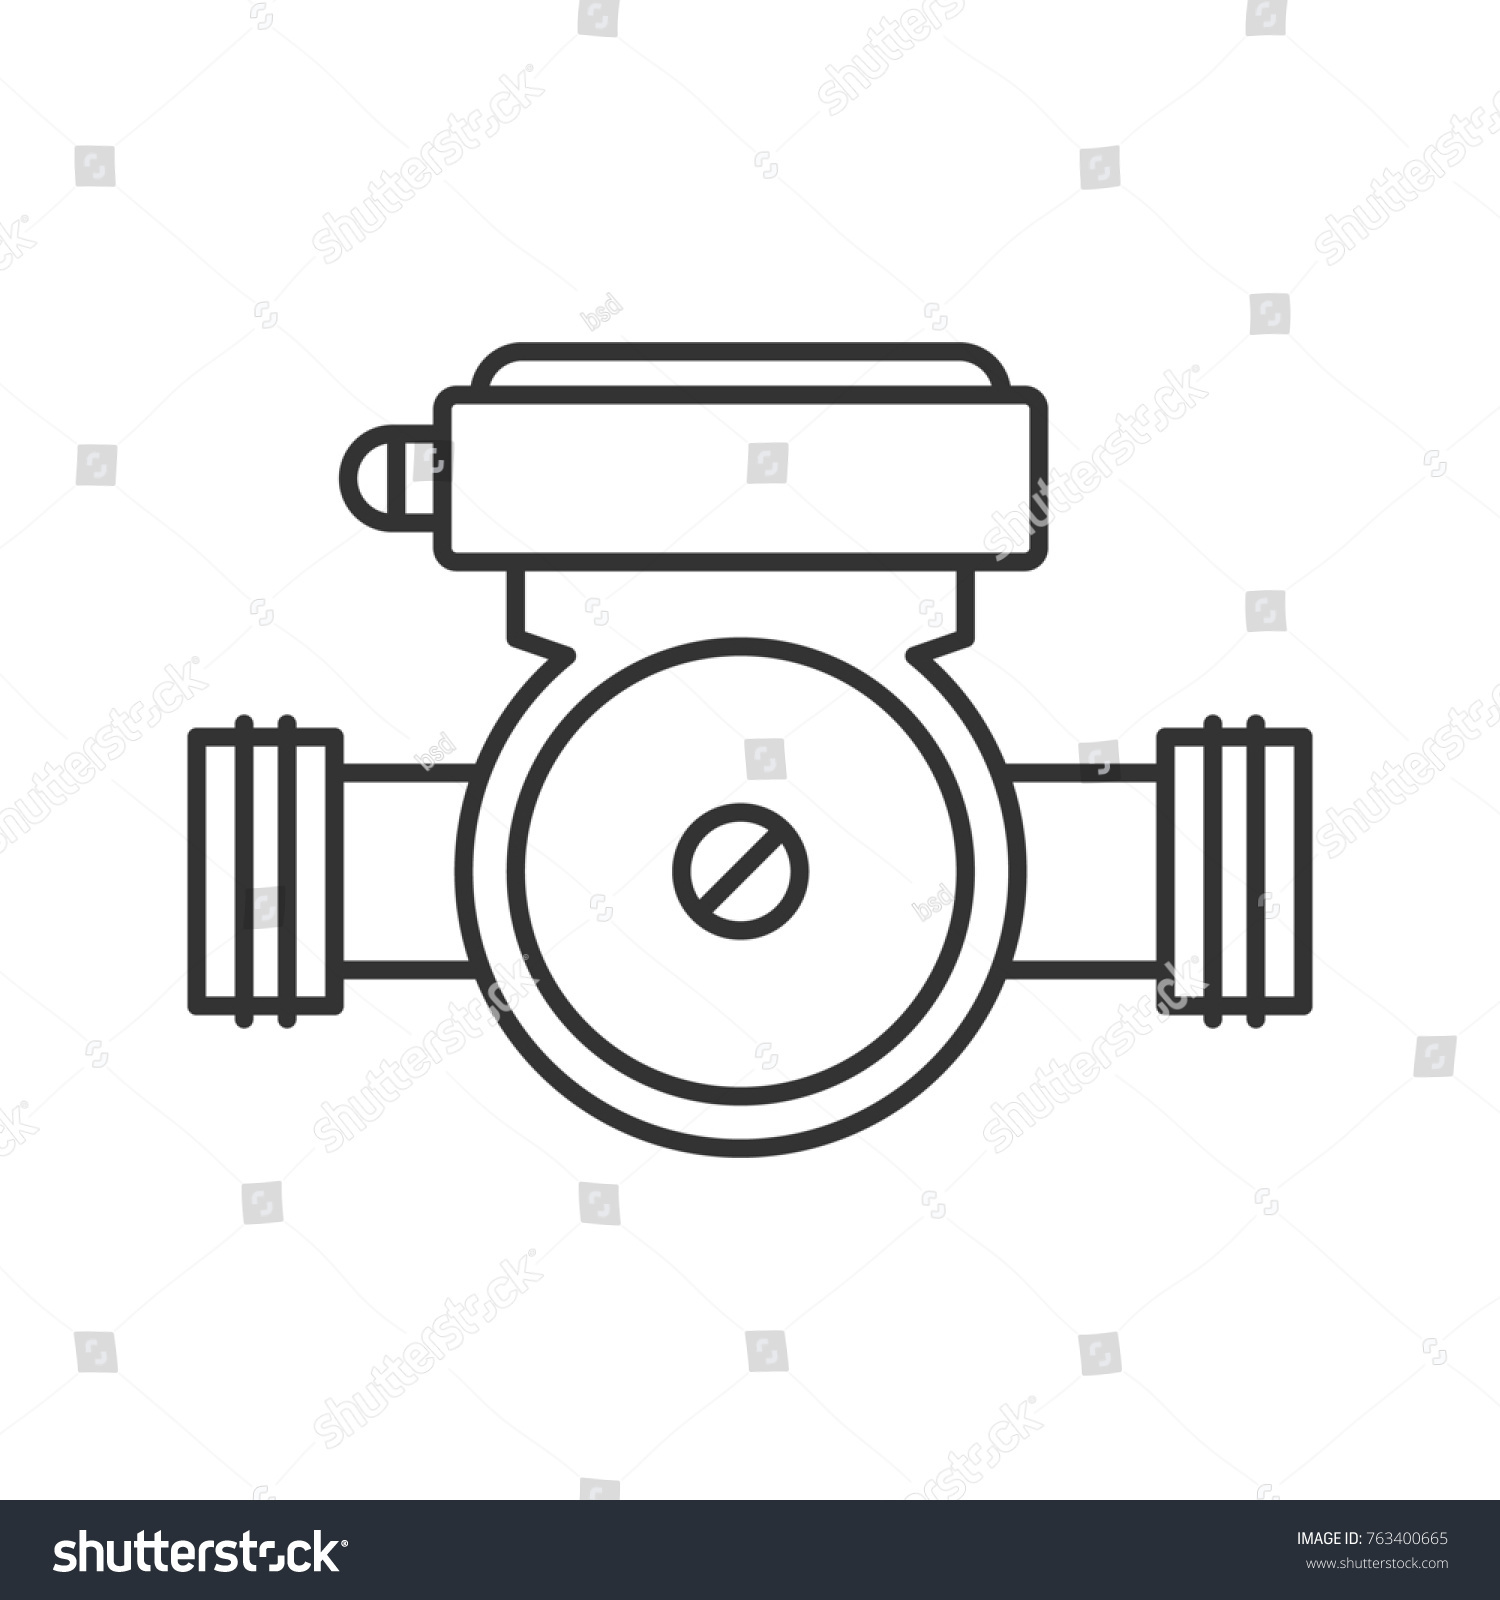 Water Pump Linear Icon Thin Line Stock Illustration 763400665